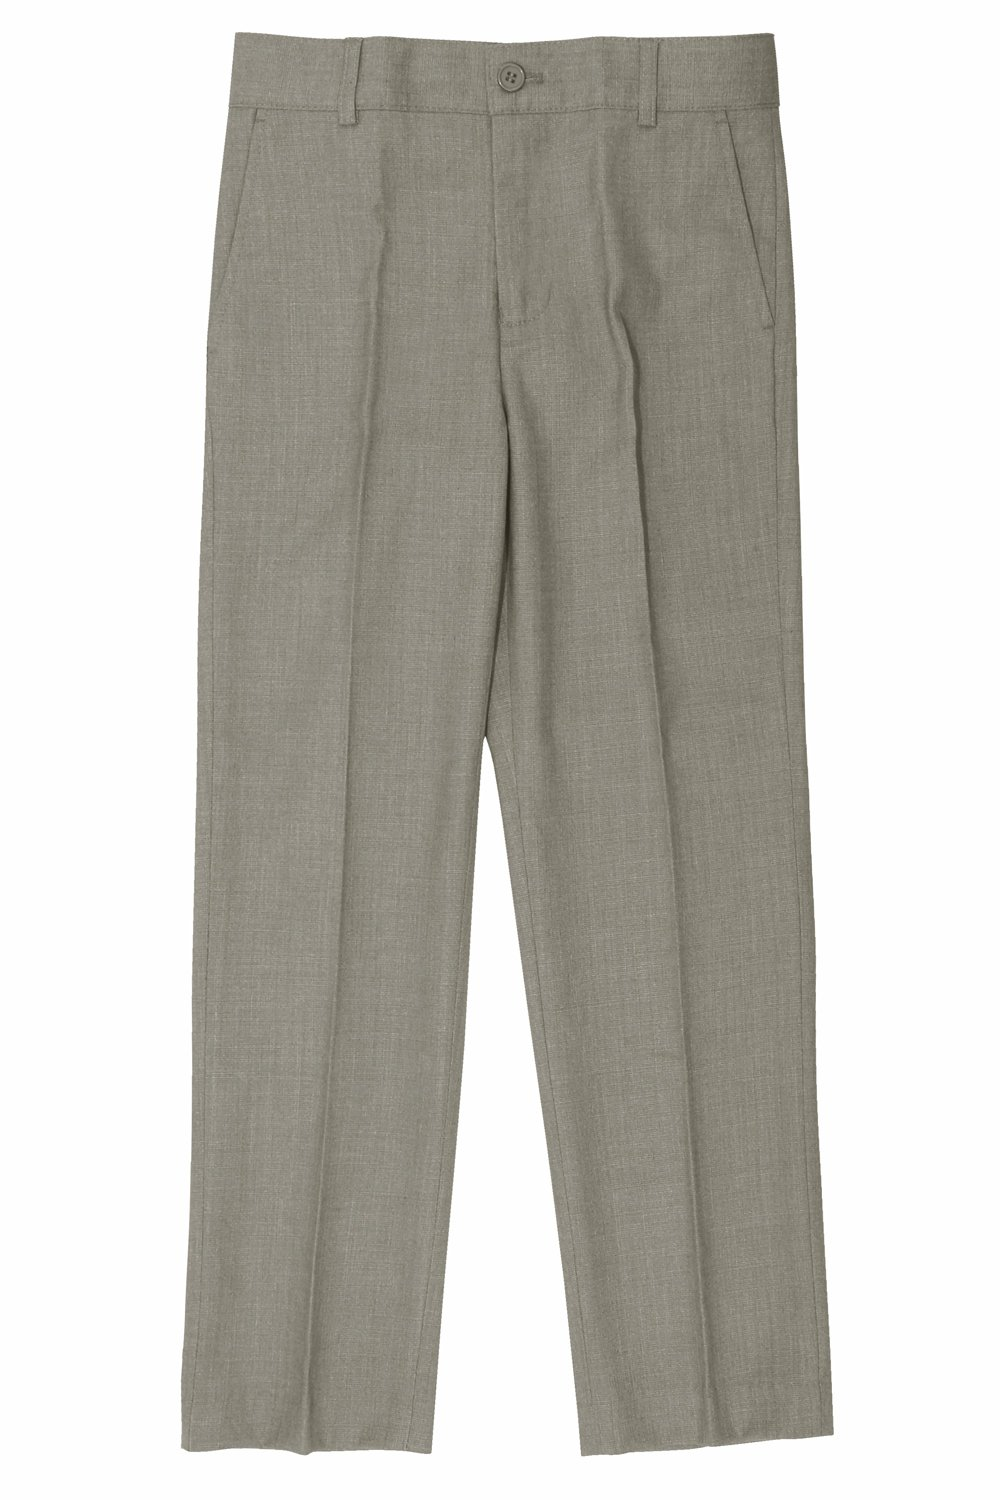 Armando Martillo Big Boys' Slim Fit Formal Dress Pants Linen Look for Summer Events for Communions, Holidays Weddings Choirs Prom Partires, School Uniform and All Special Events Light Gray 10